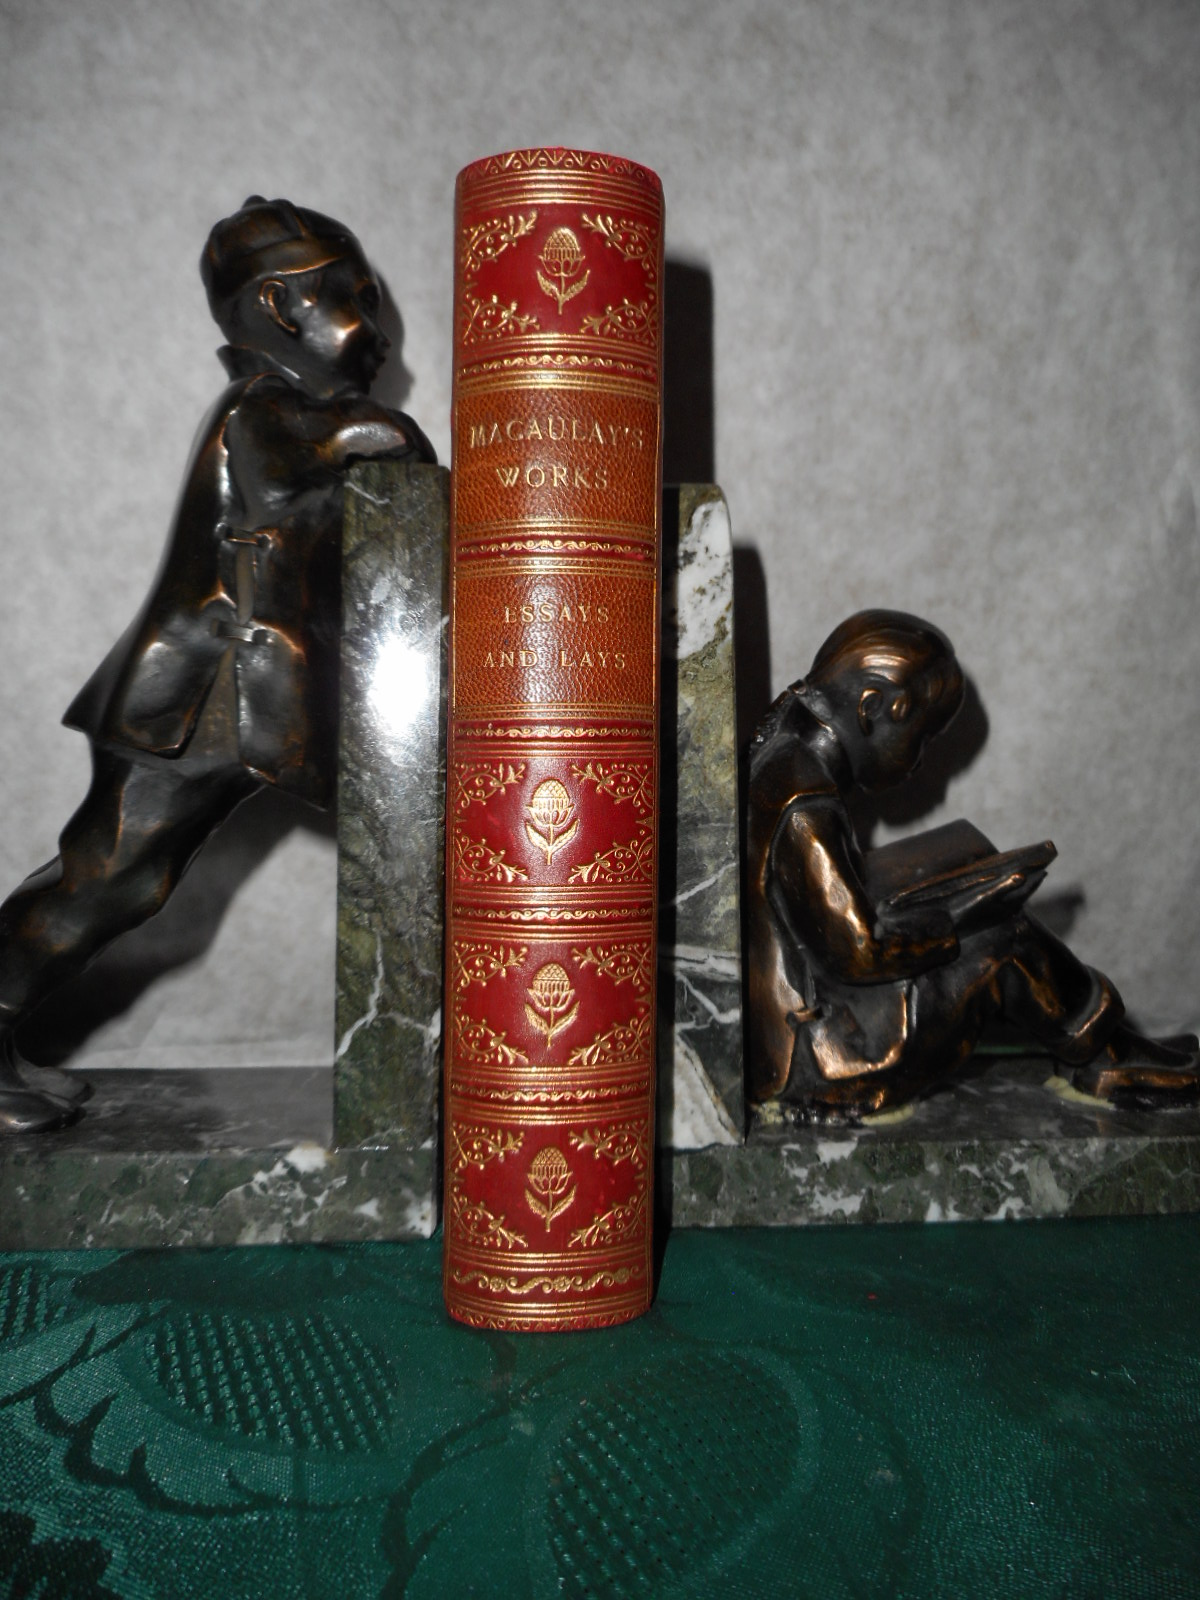 Image for Lord Macaulay's Essays and Lays of Ancient Rome Popular Edition (Original Leather Binding)